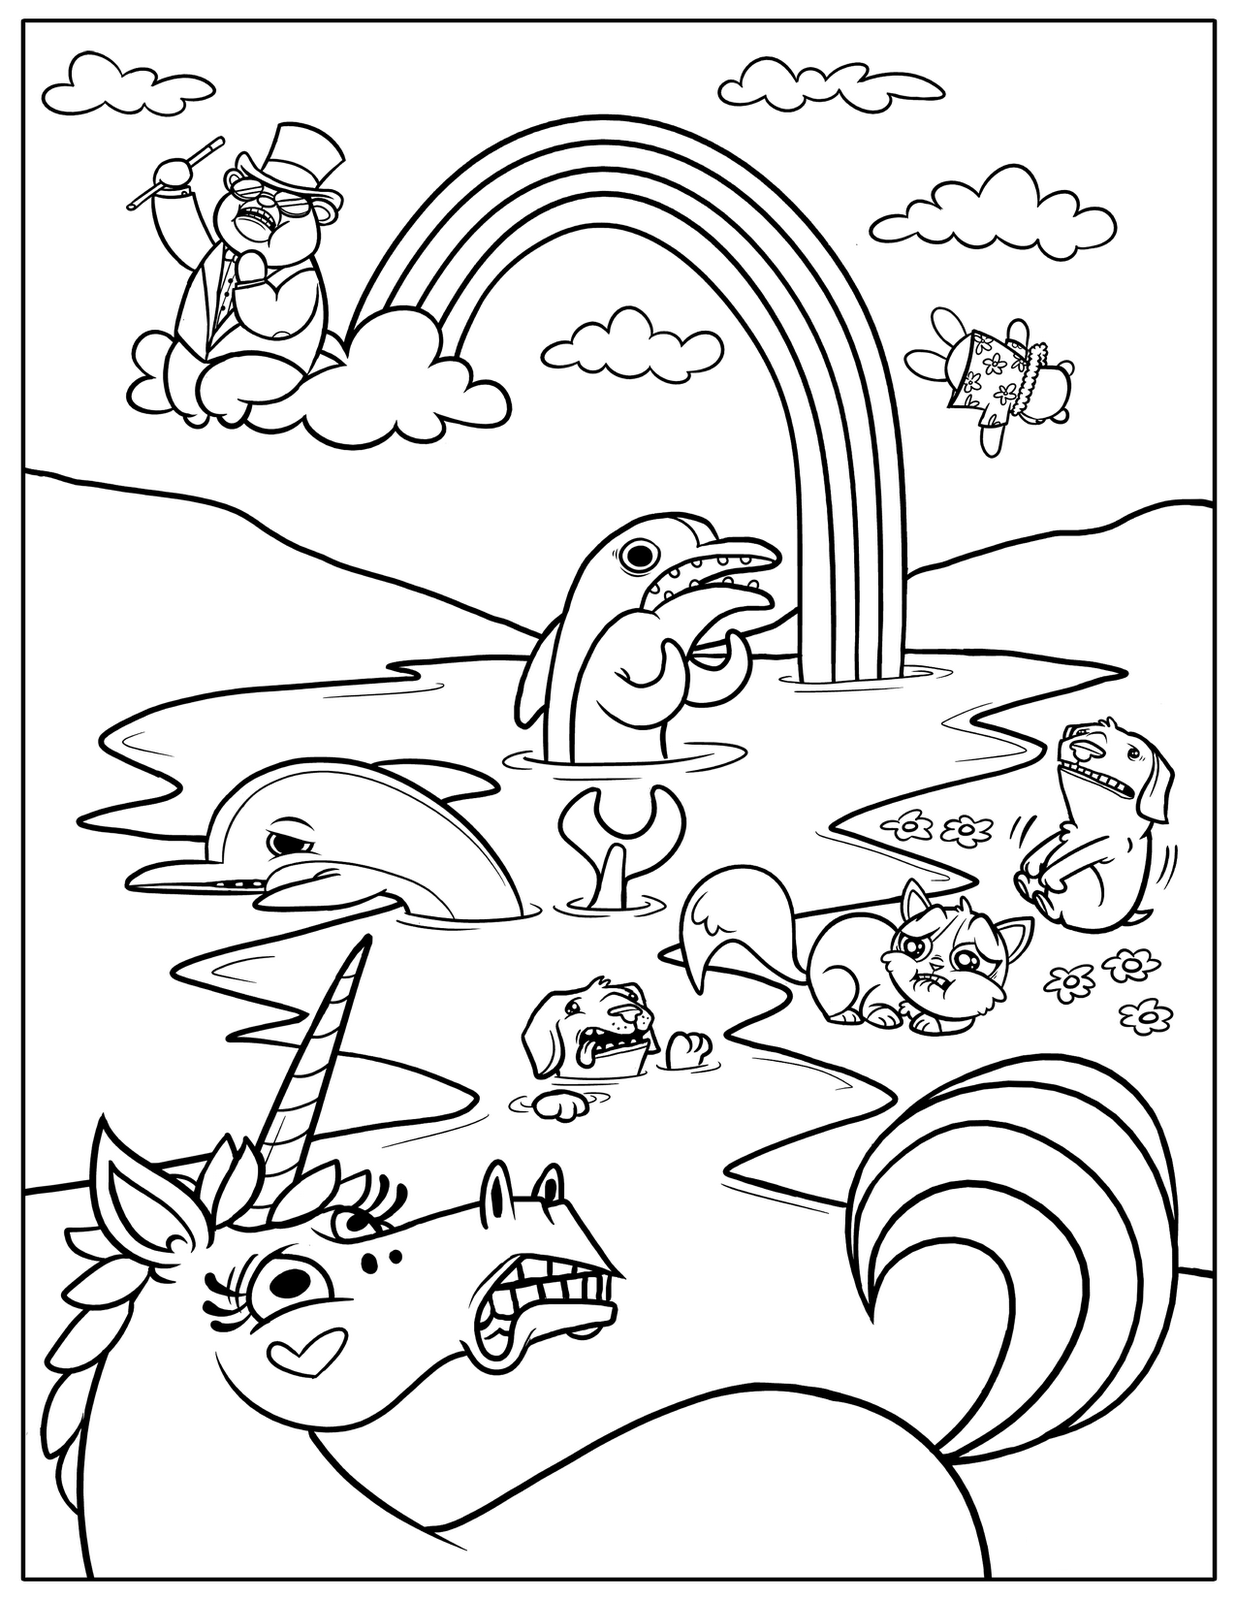 Coloring Pages Rainbow Fairy Coloring Pages free printable rainbow coloring pages for kids printable